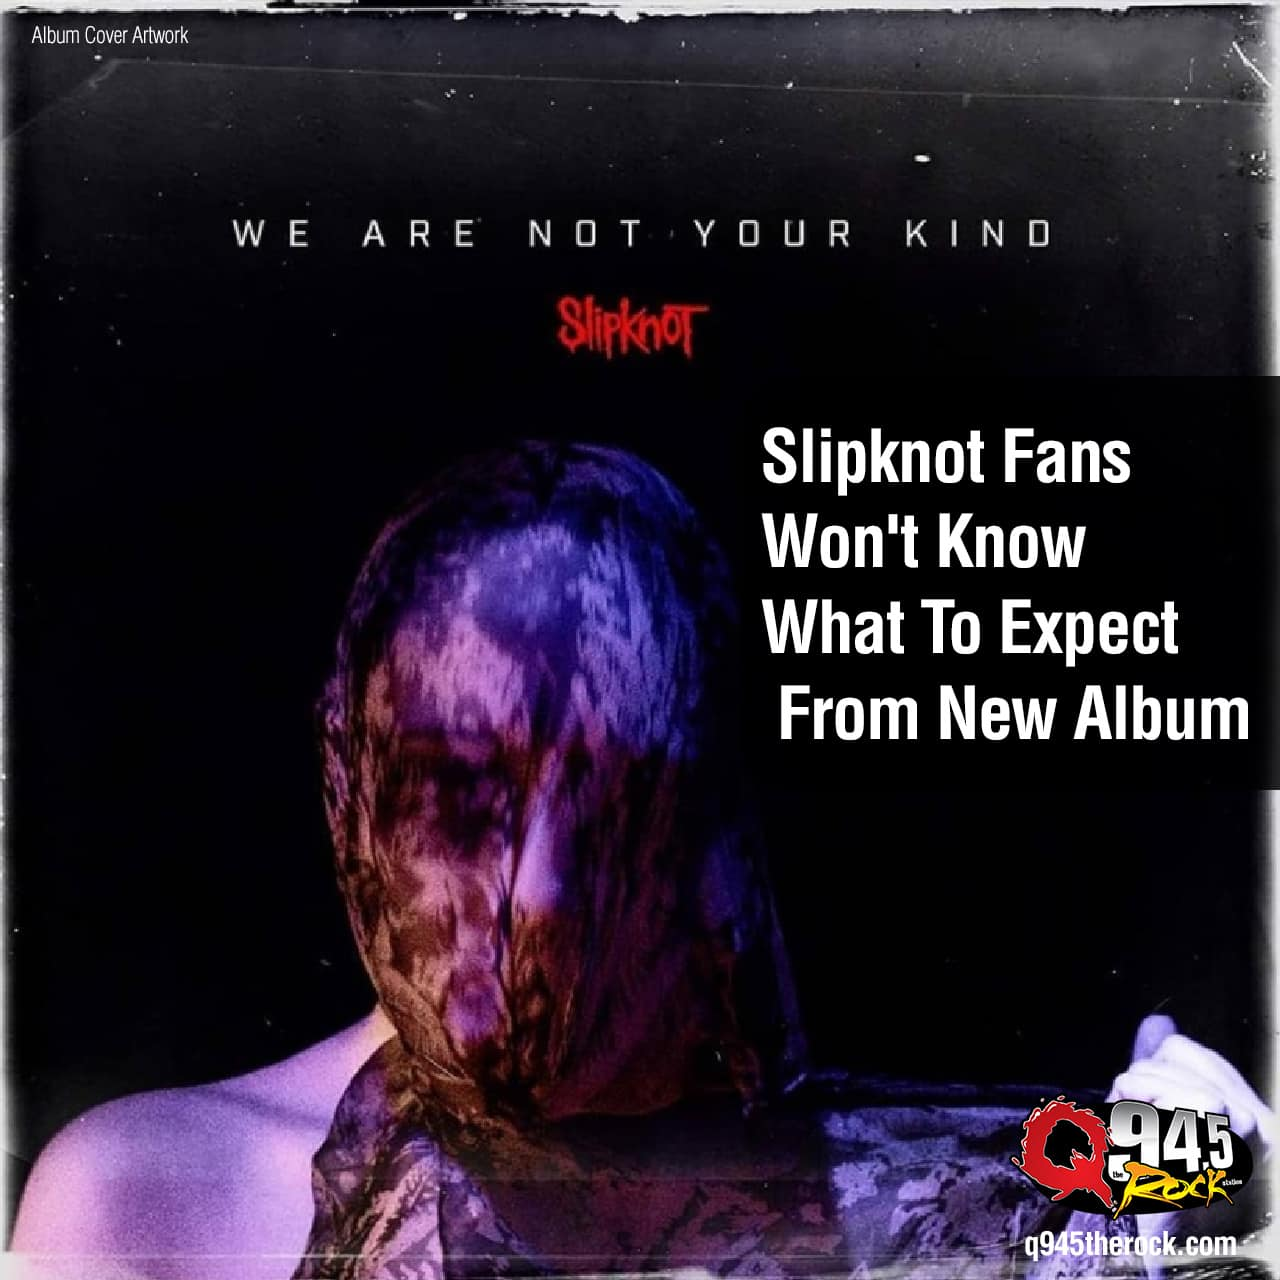 Slipknot Fans Won't Know What To Expect From New Album